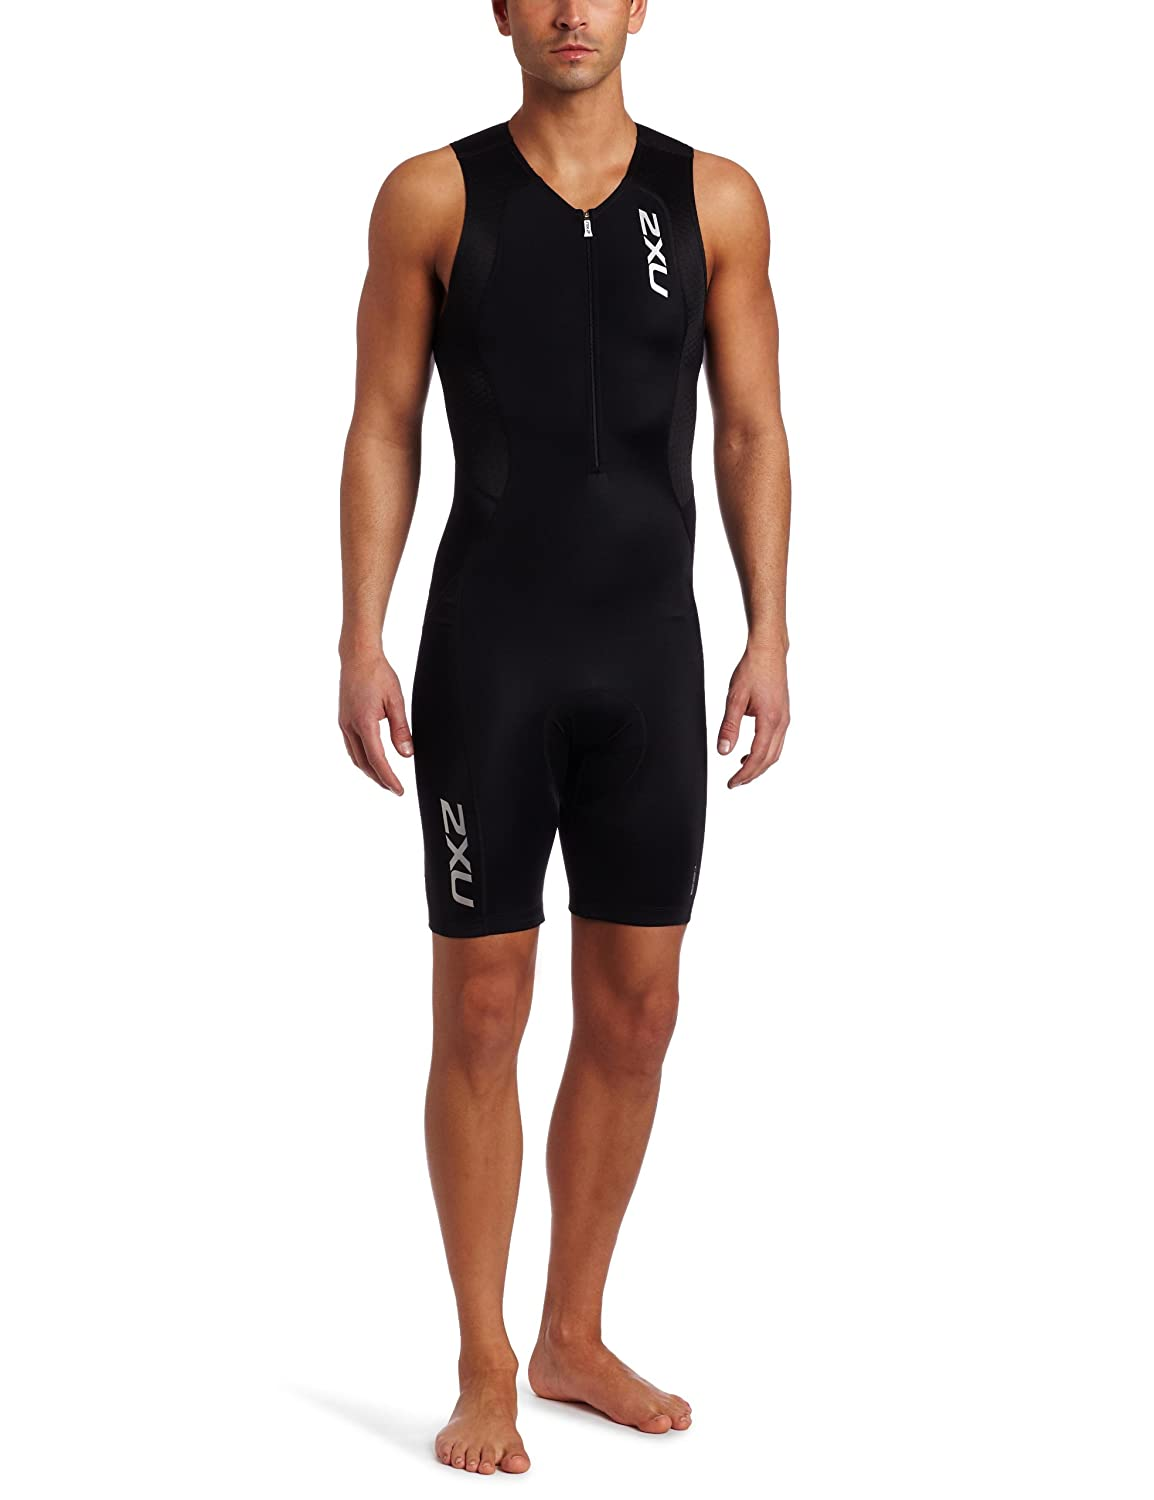 2XU Comp Tri Men's Suit -